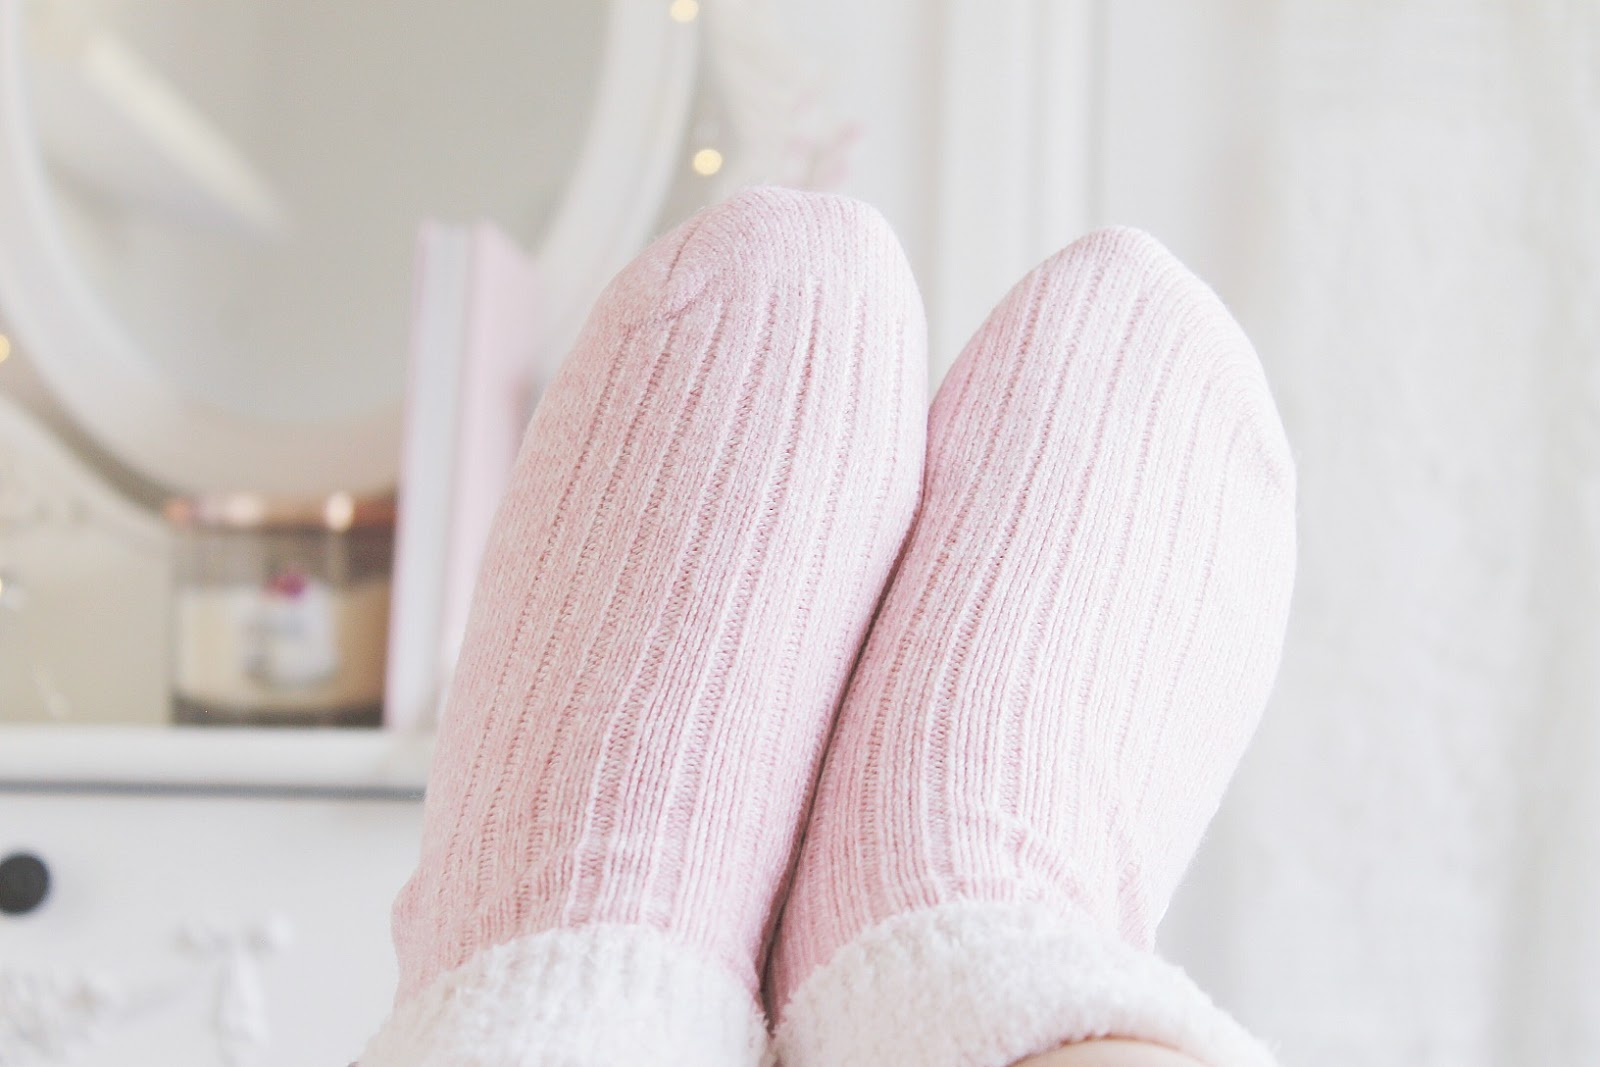 Girly hygge pamper routine ideas